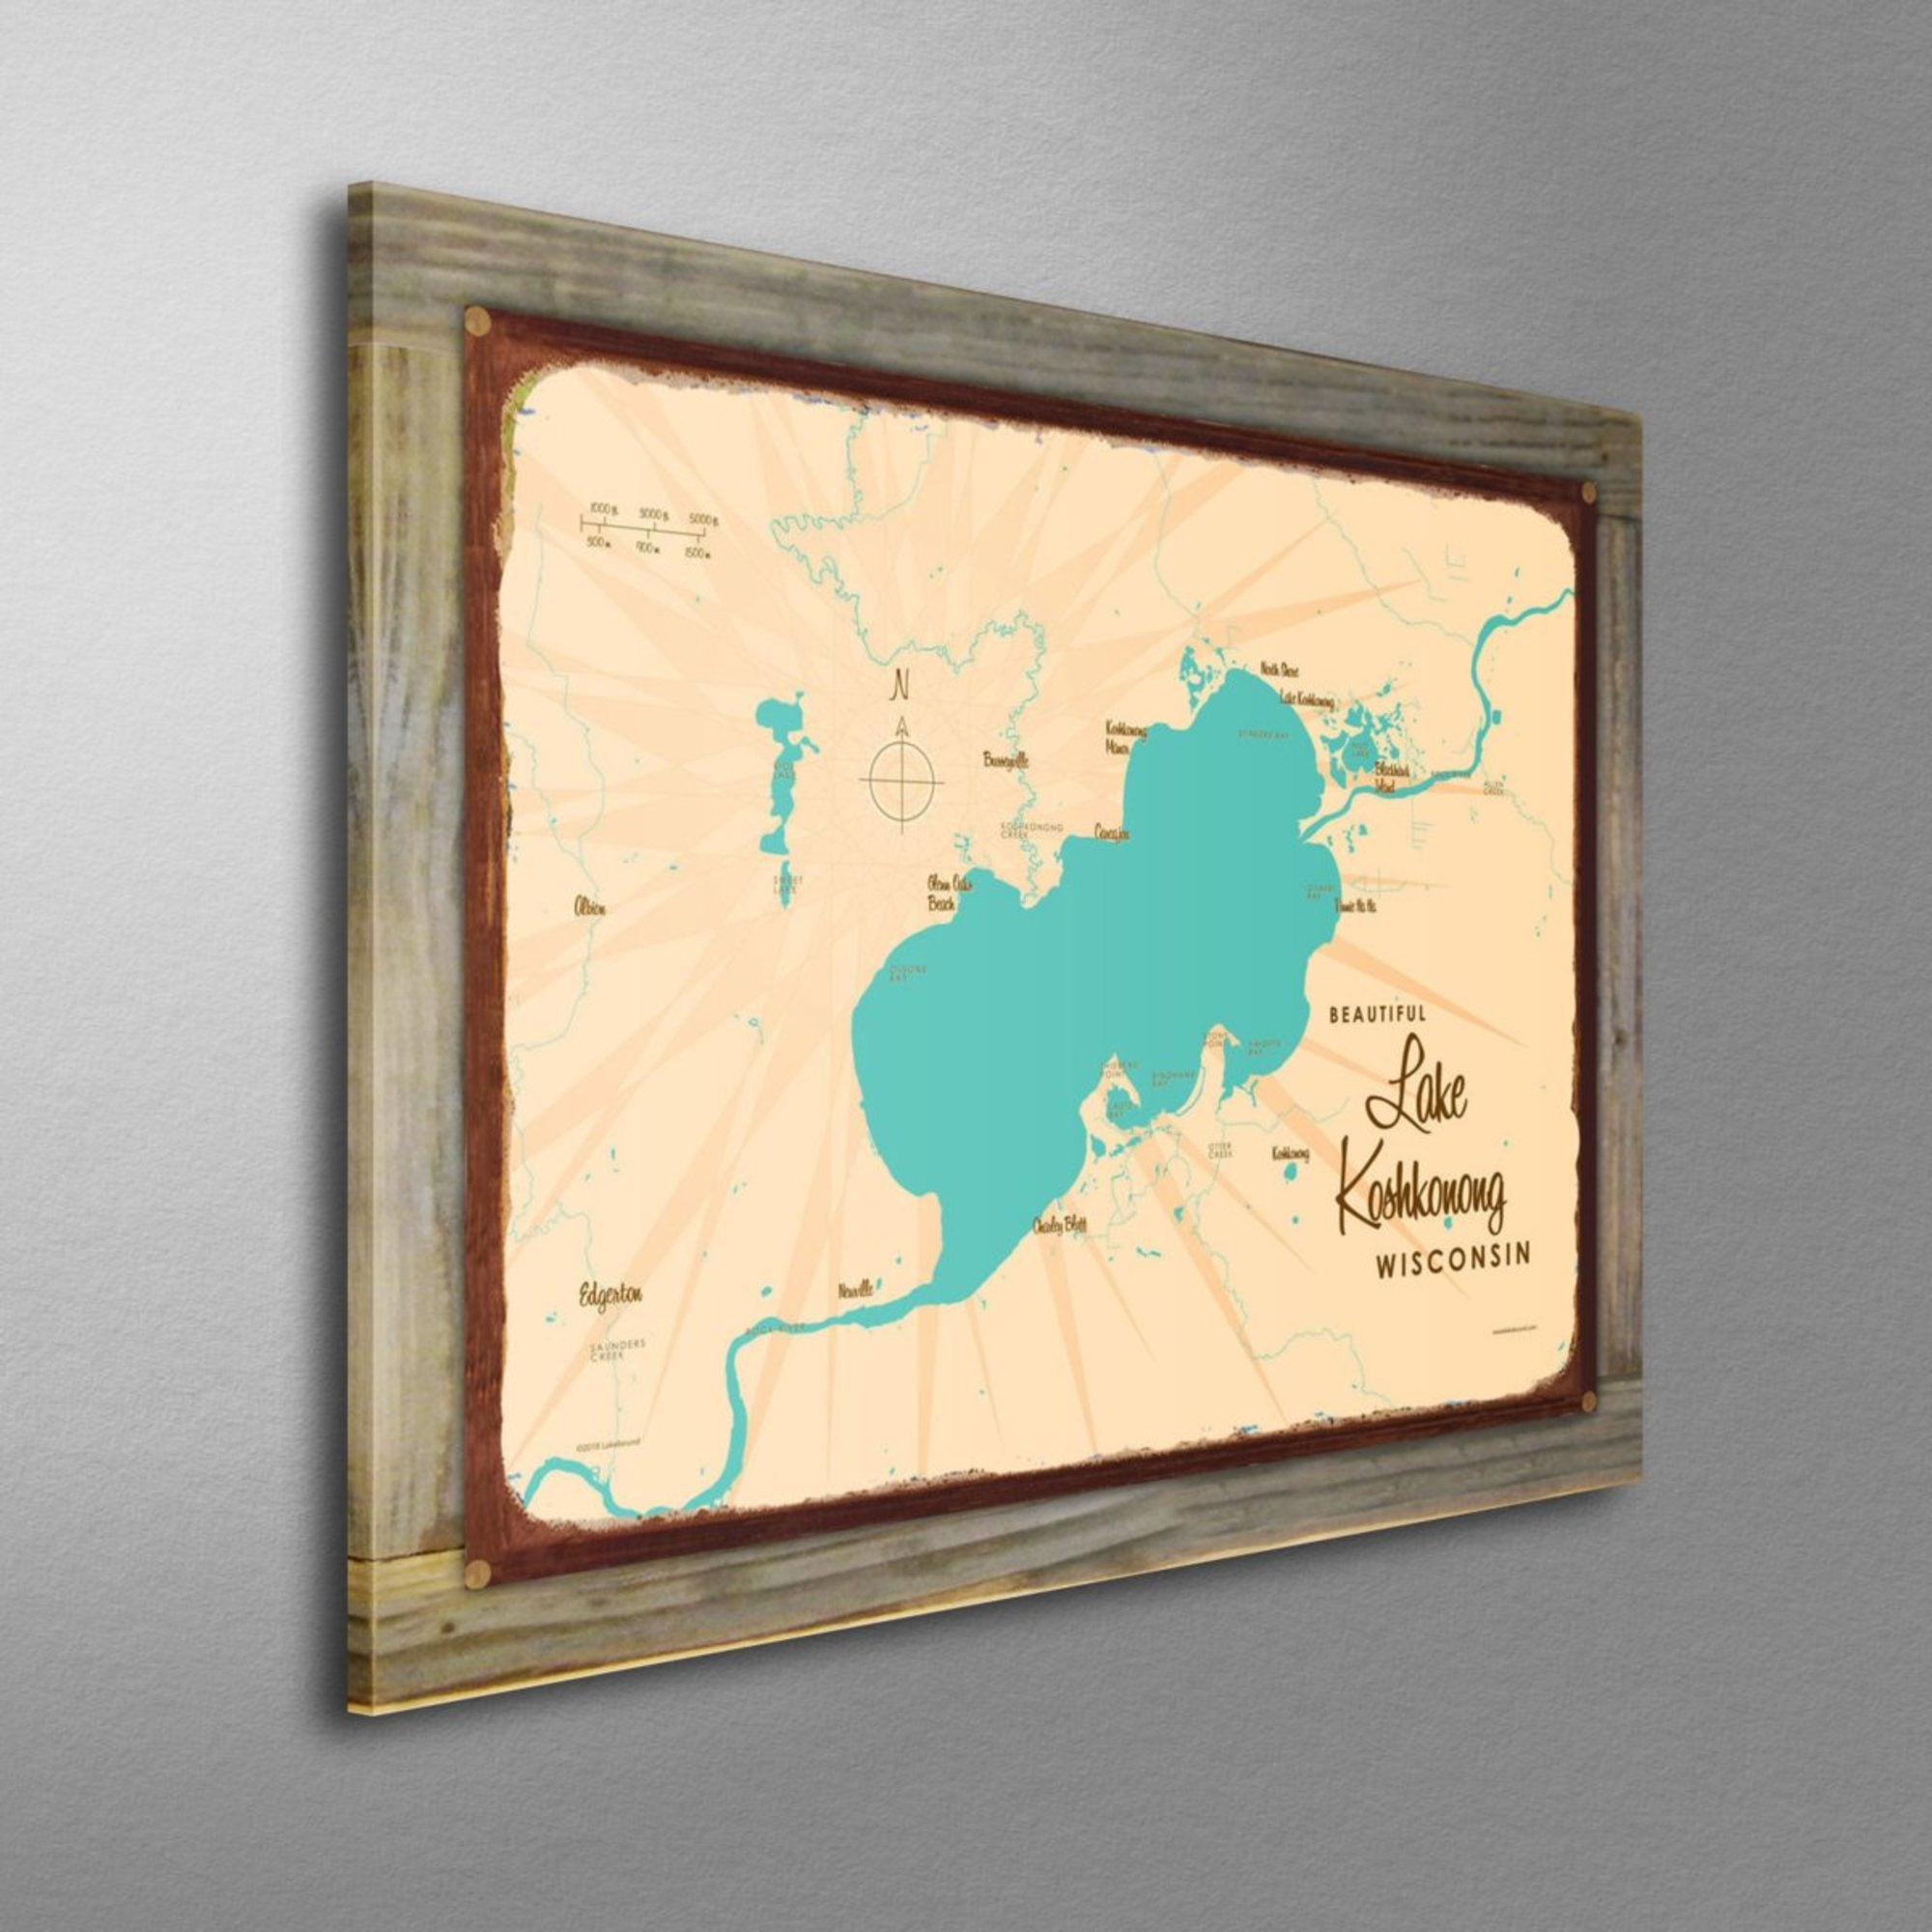 Lake Koshkonong Wisconsin, Wood-Mounted Rustic Metal Sign Map Art